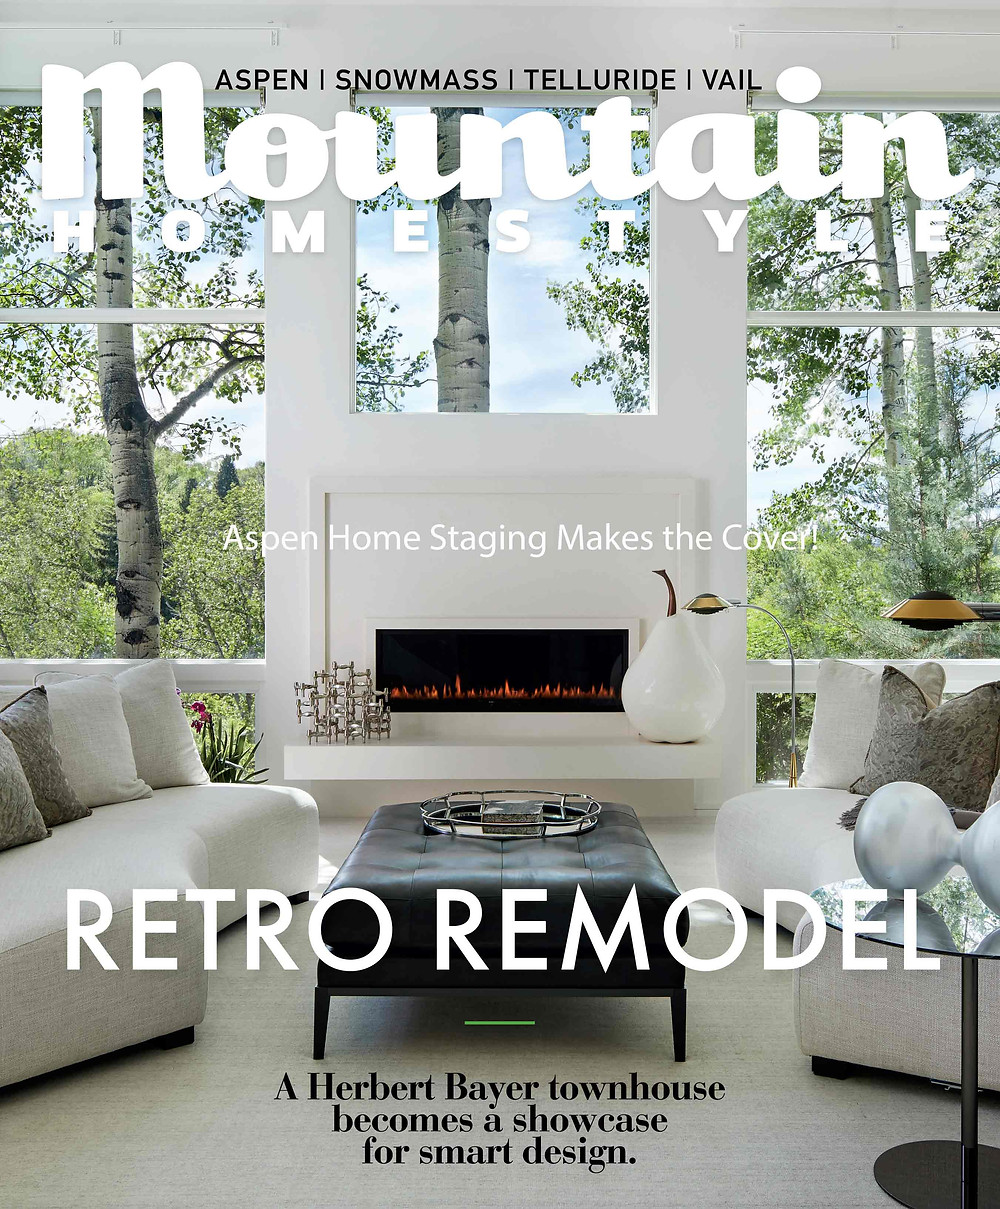 Mountain Homestyle & Aspen Home Staging Featured Home!